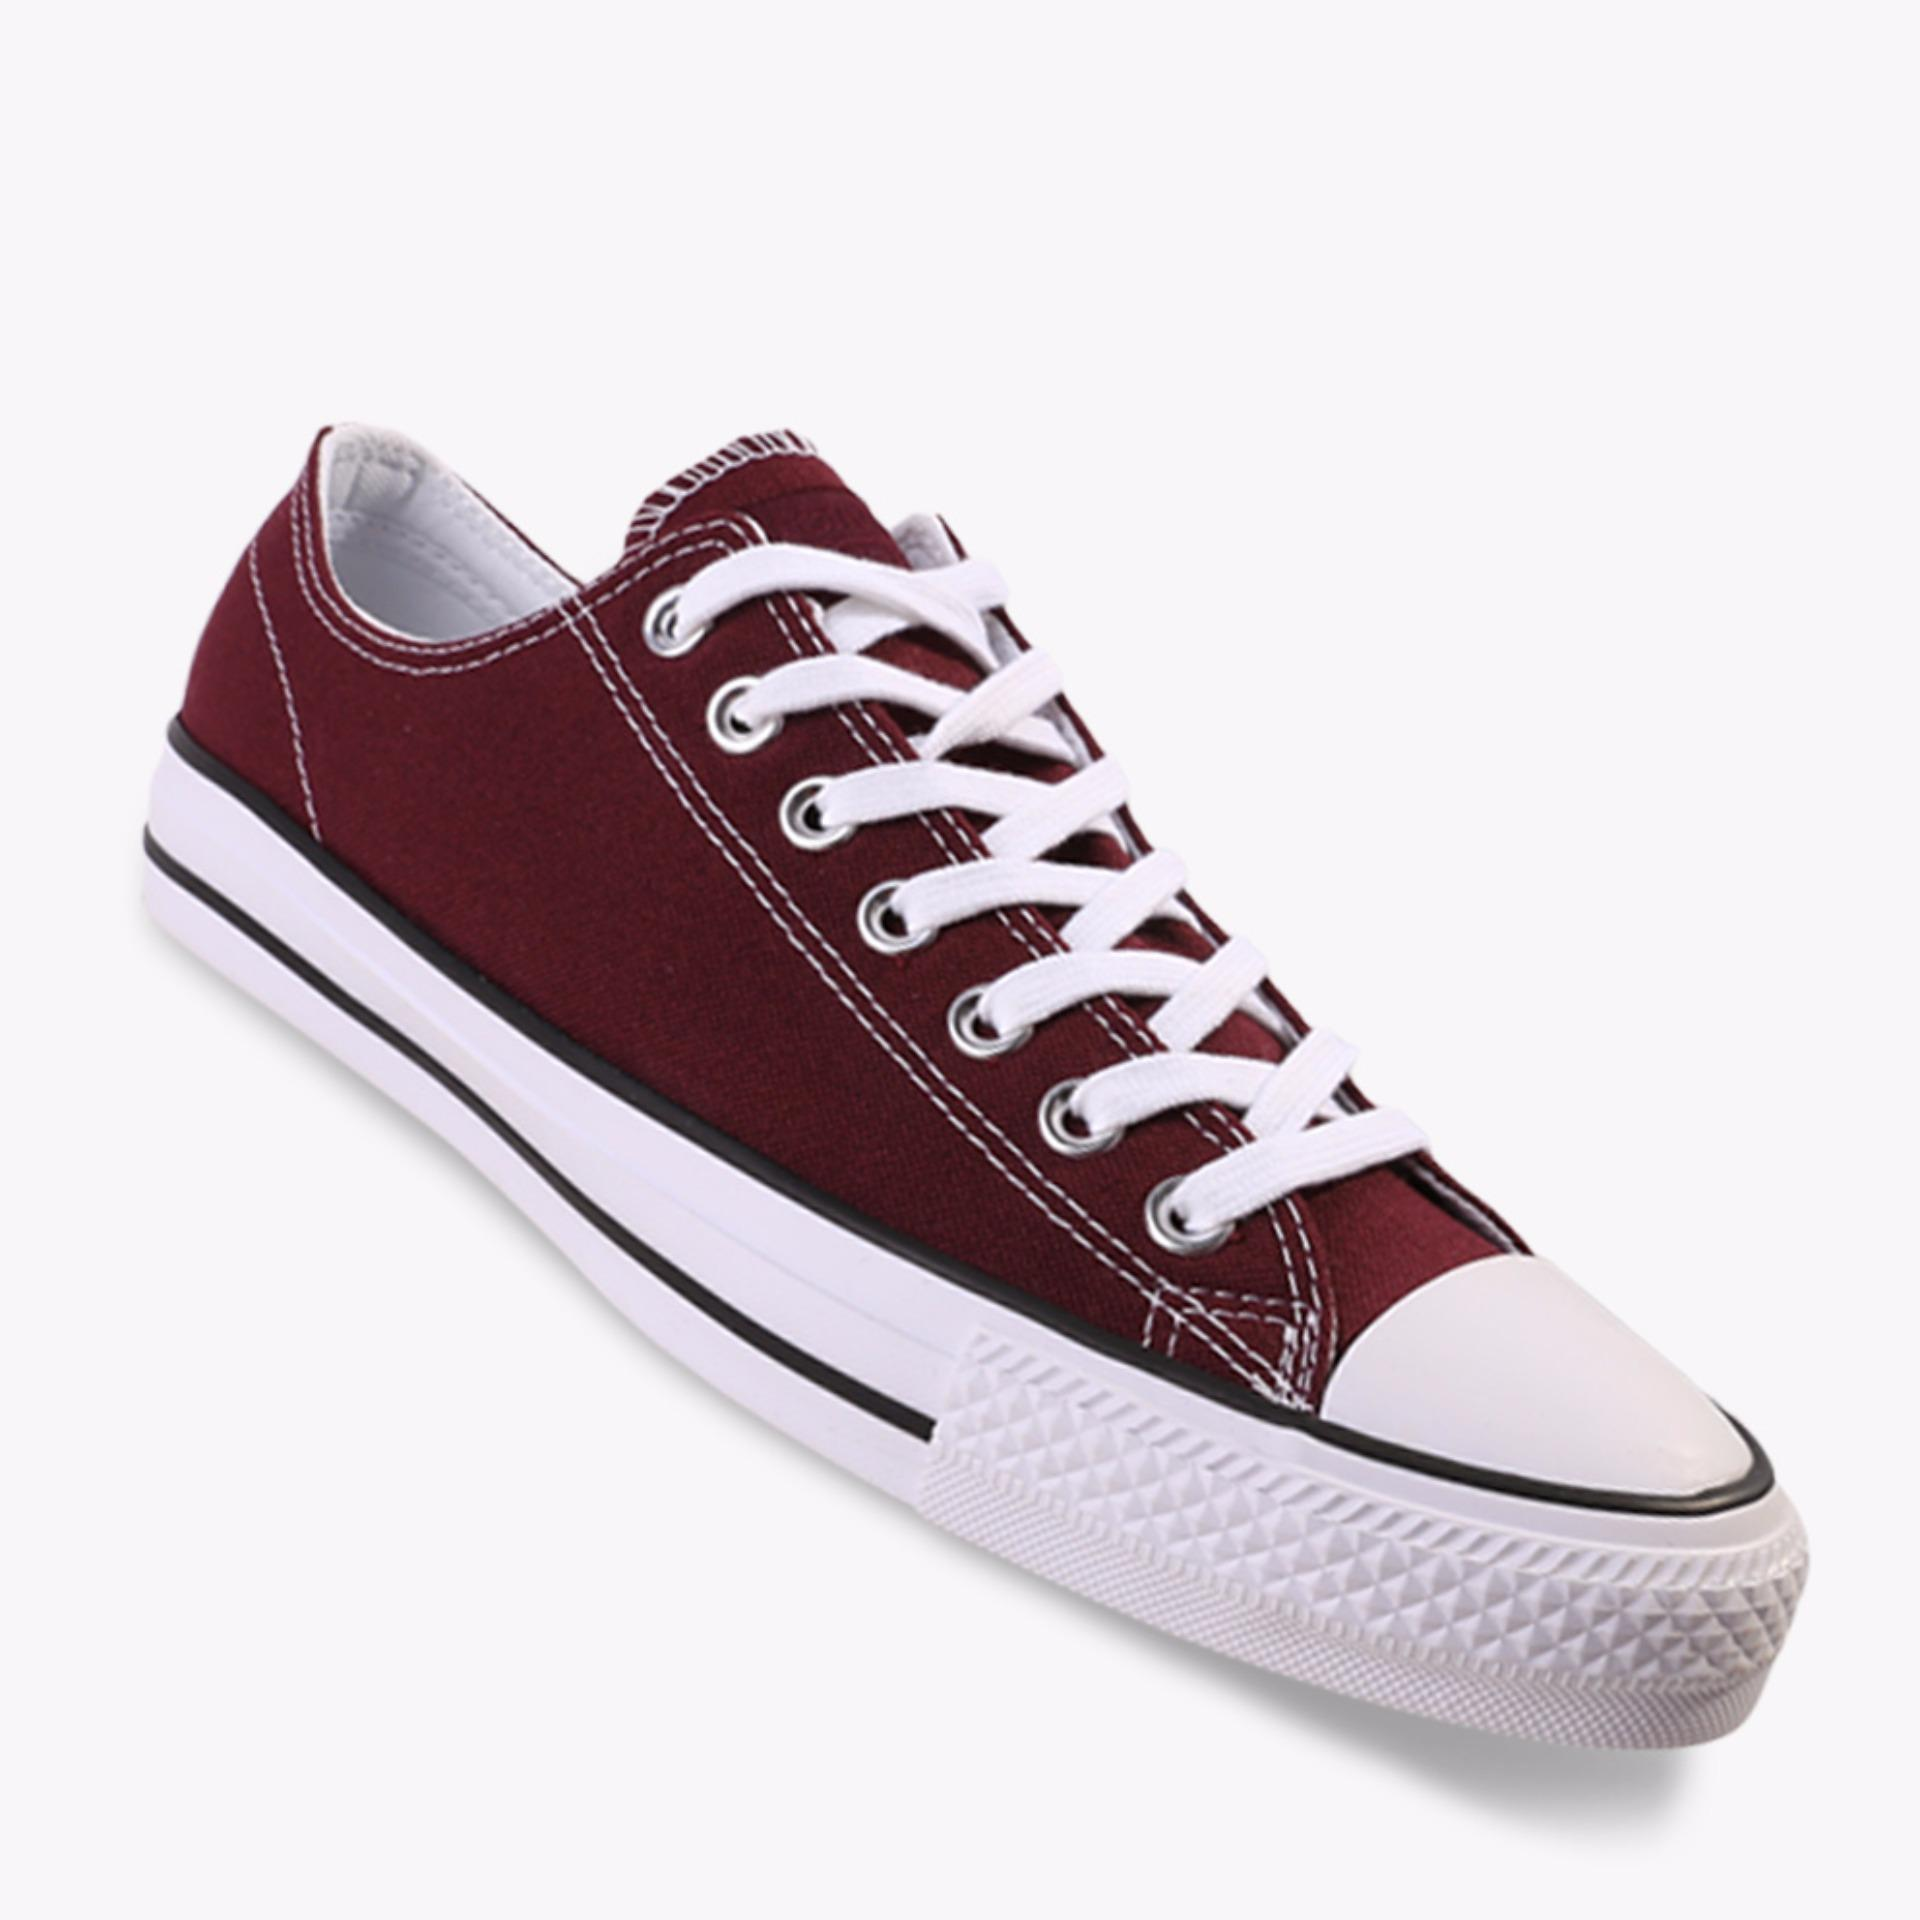 Ulasan Tentang Converse Chuck Taylor All Star Pro Ox Men S Sneakers Shoes Maroon